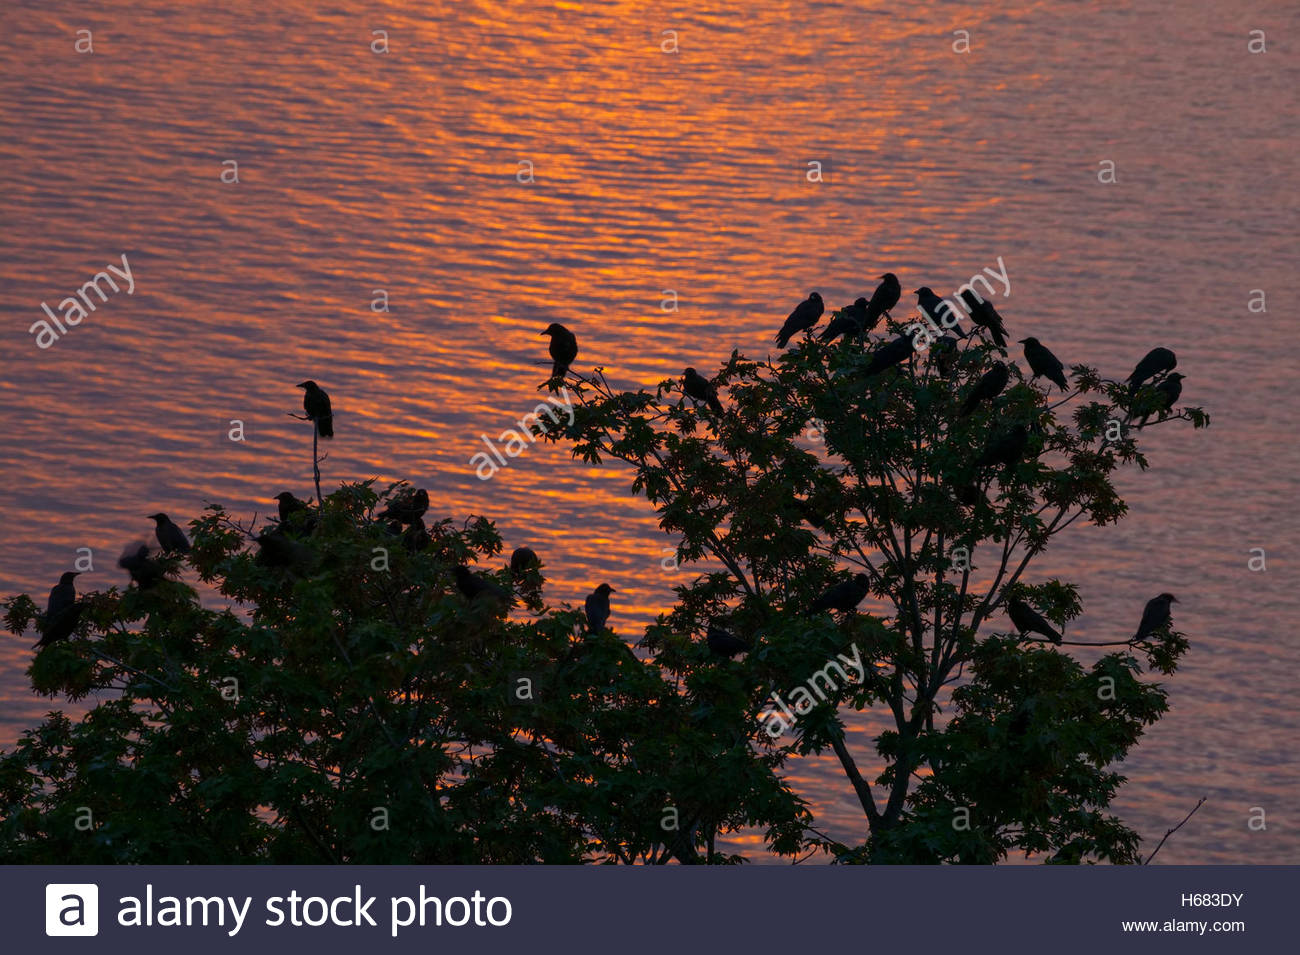 A few dozen American crows (Corvus brachyrhynchos) sit together in a tree overlooking Puget Sound, waiting for the Stock Photo